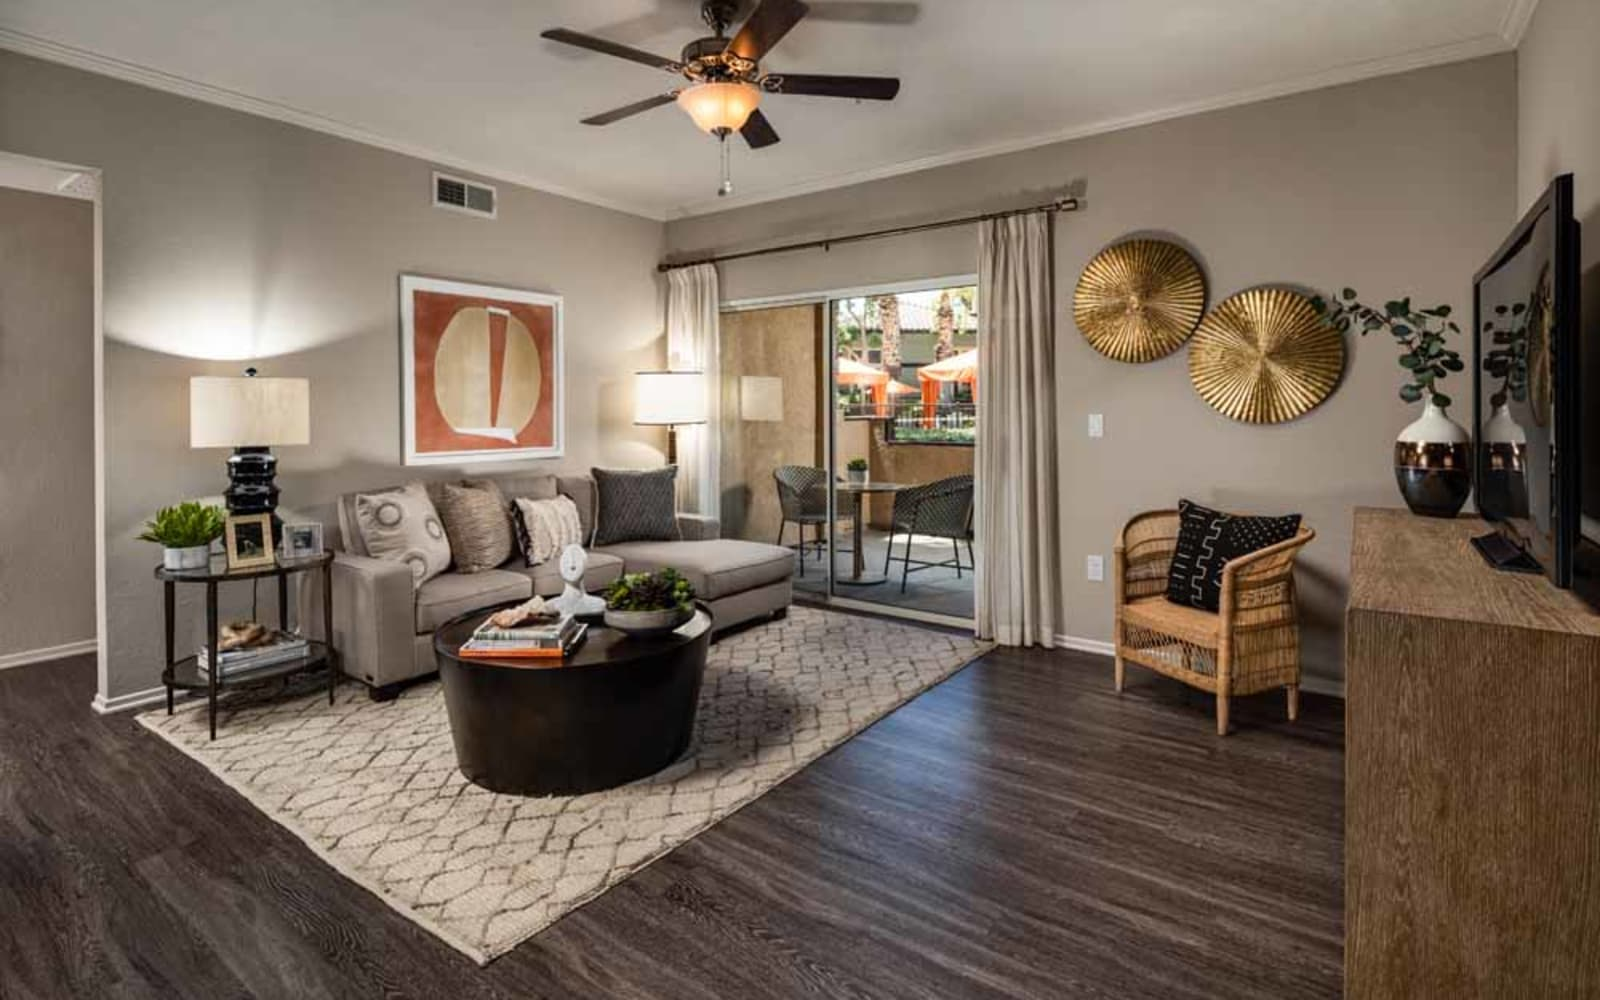 An apartment living room with sliding glass doors to the balcony at Colonnade at Sycamore Highlands in Riverside, California